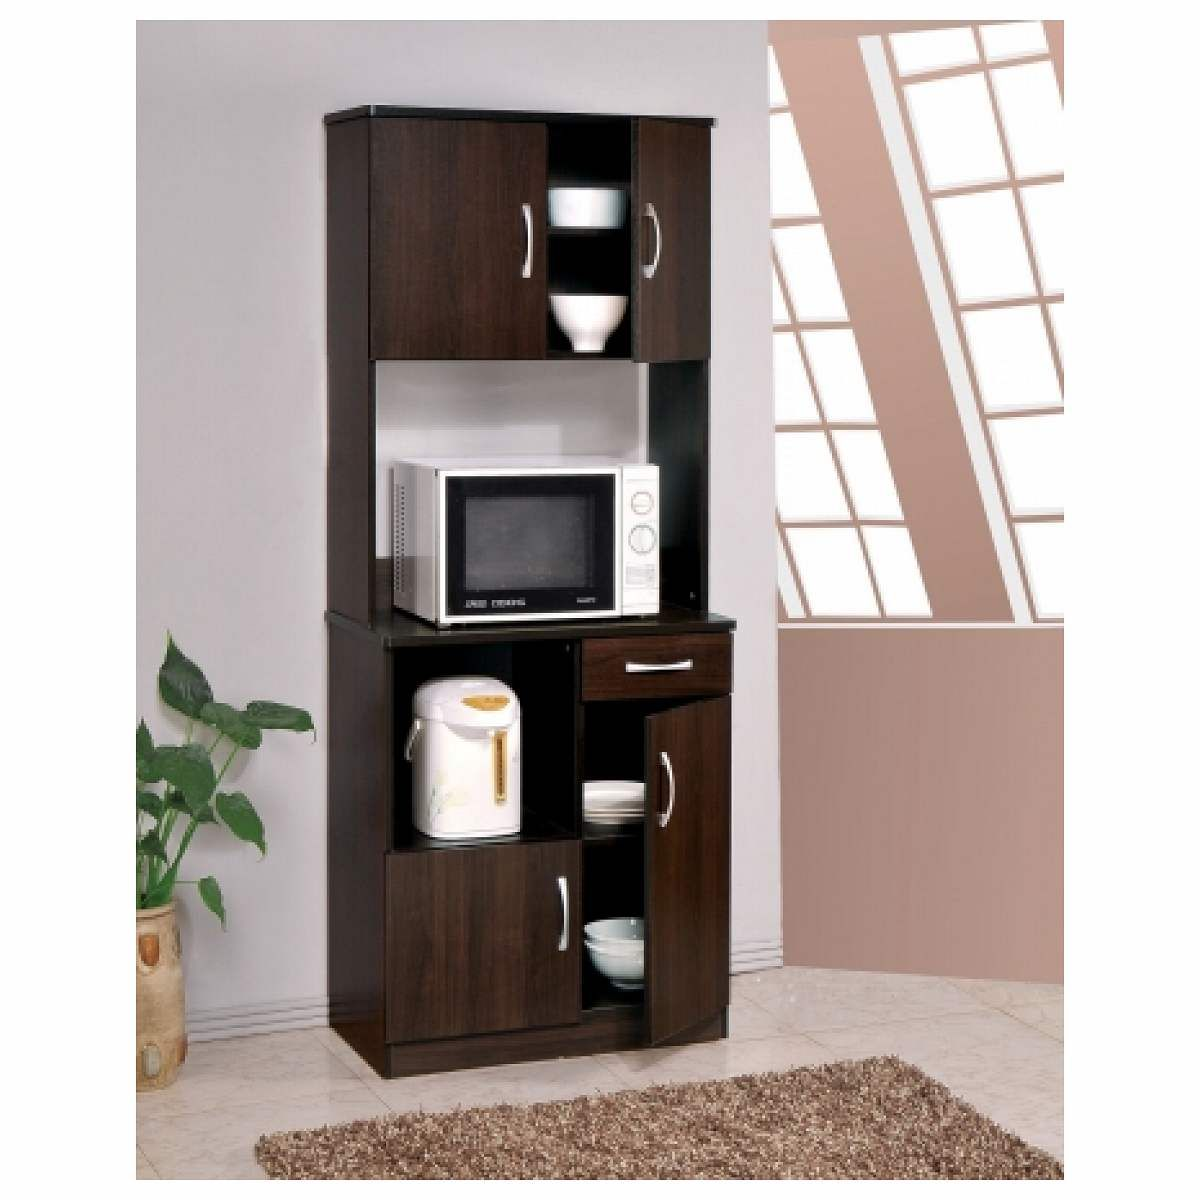 Acme Furniture Industry 12258 Quintus Kitchen Cabinet With Hutch In  Espresso   Join The Pricefalls Family